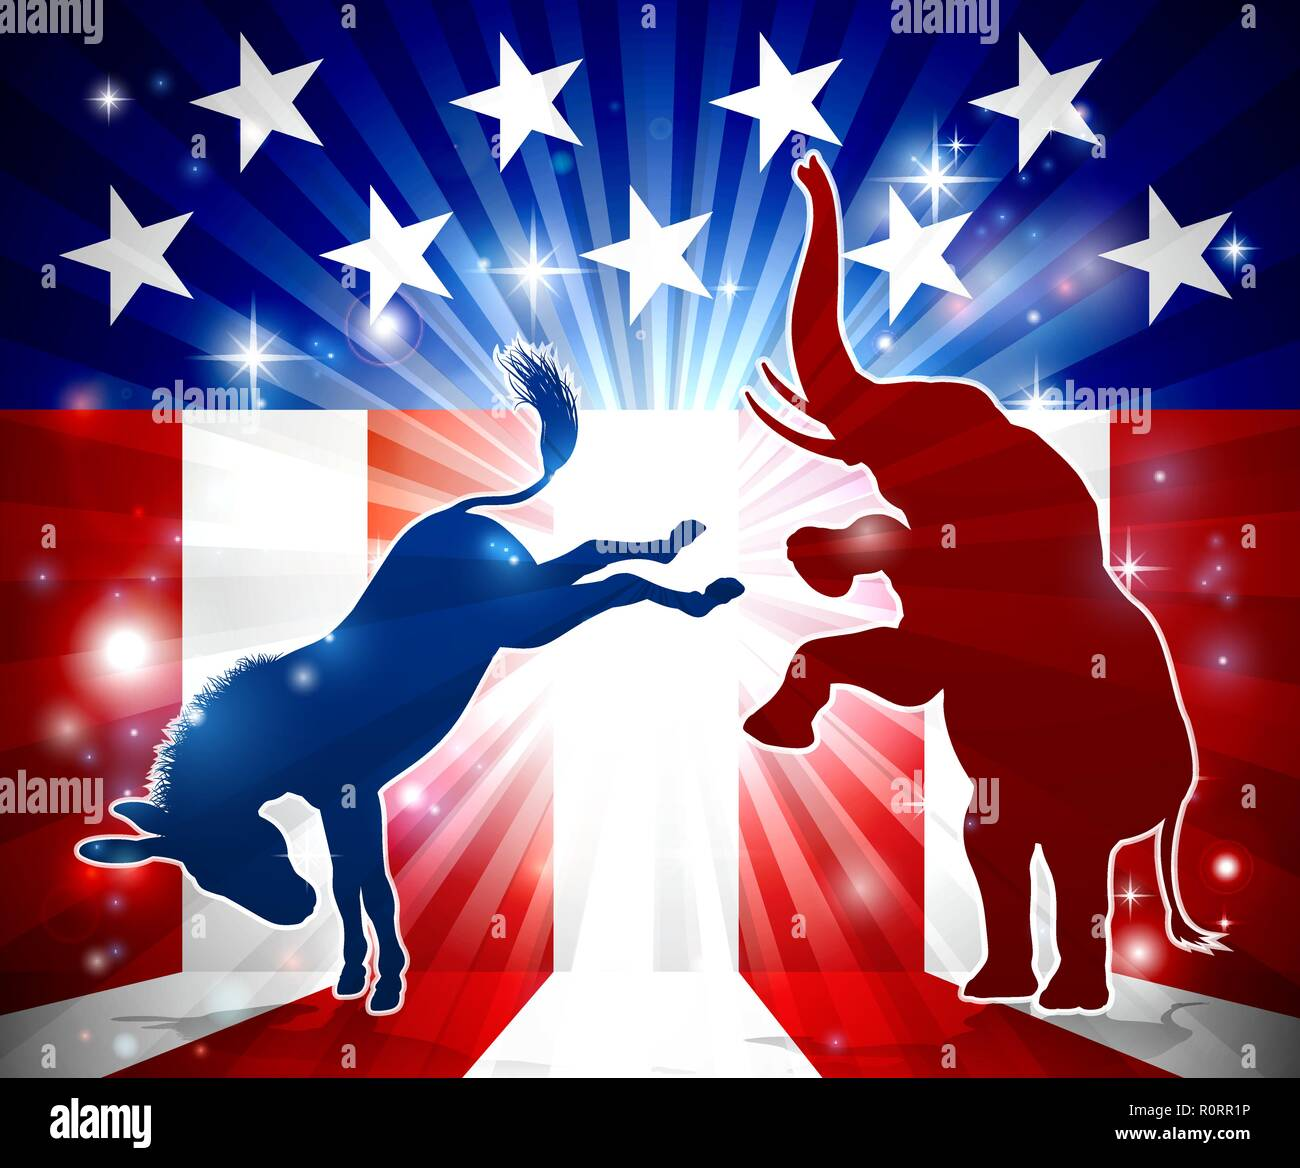 Elephant Fighting Donkey - Stock Image